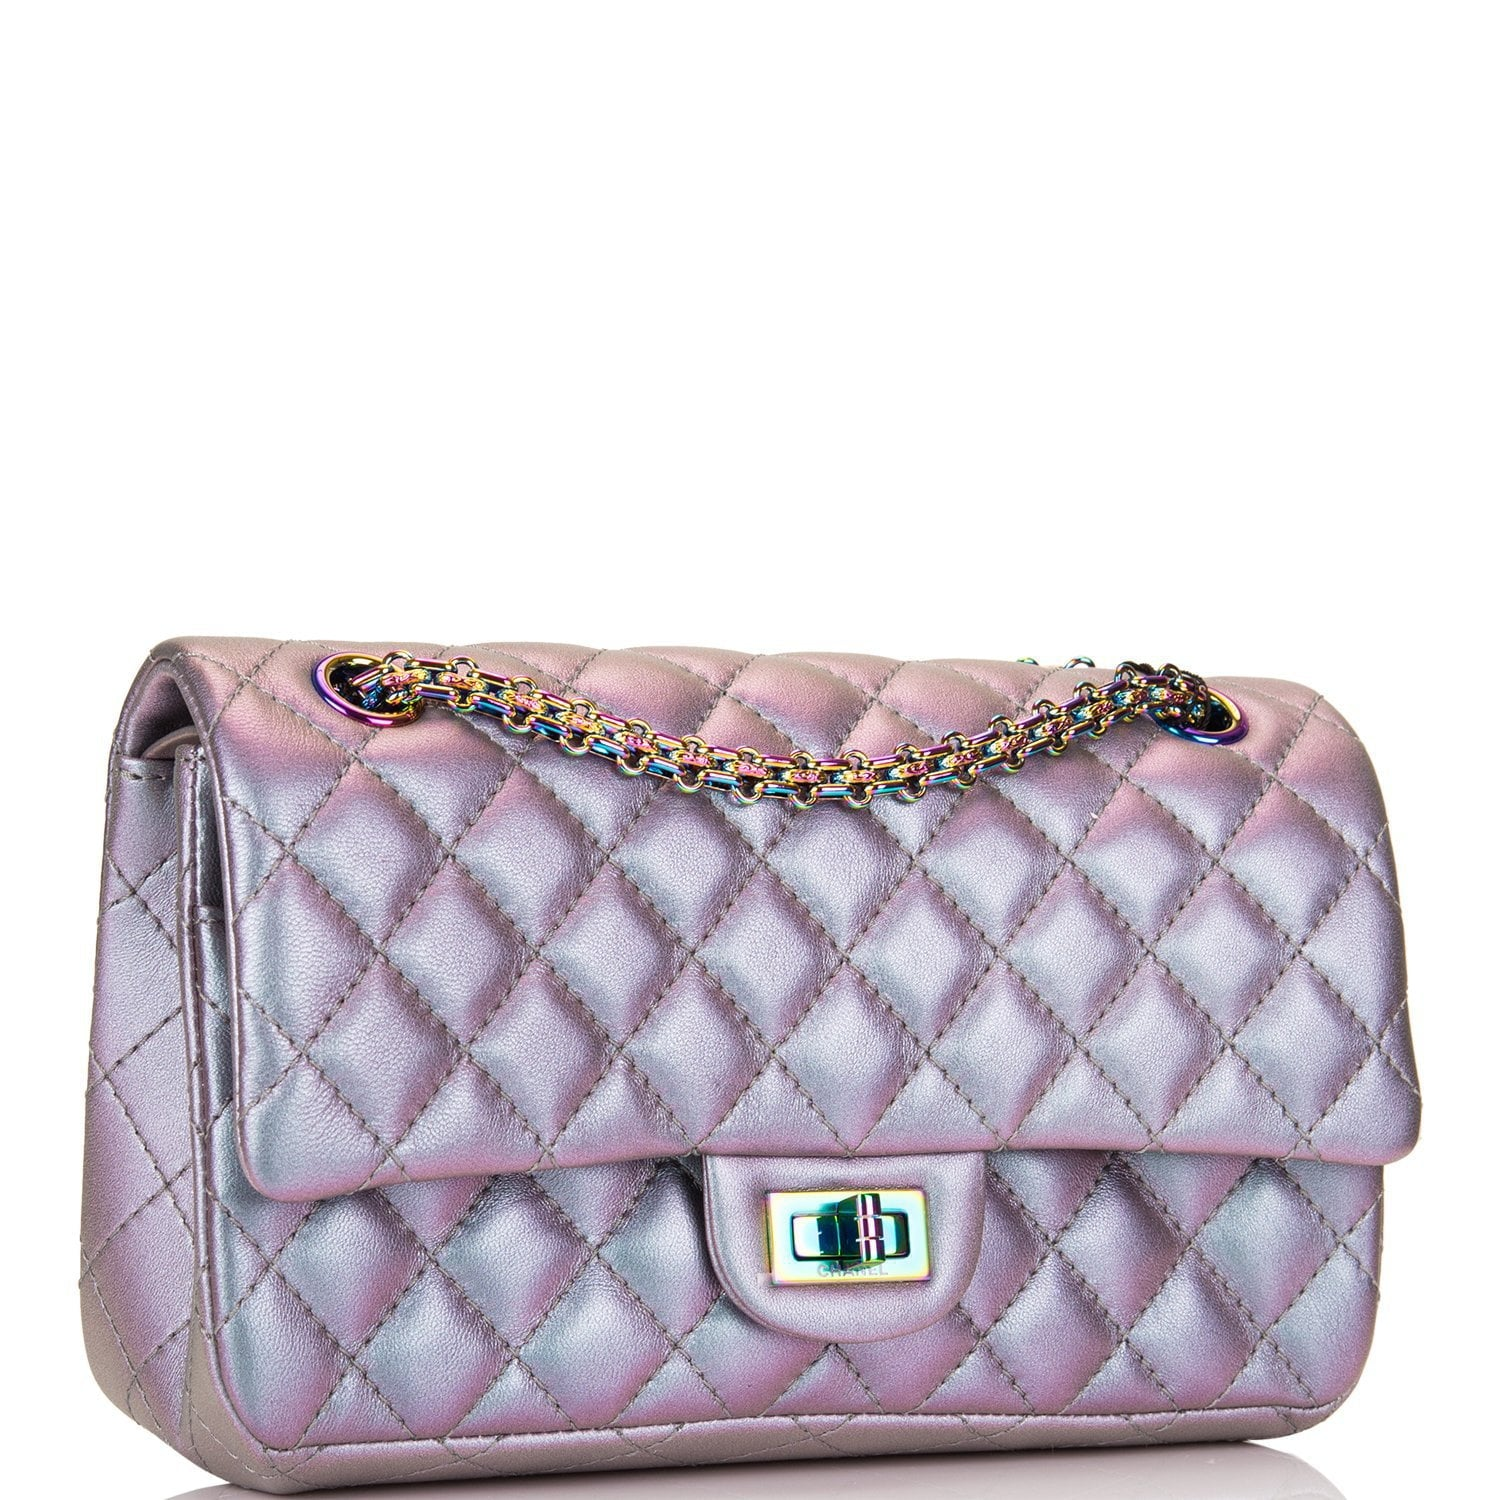 a5d1b7e5dedc Chanel Light Purple Mermaid Iridescent Goatskin Medium 2.55 Reissue Do –  Madison Avenue Couture